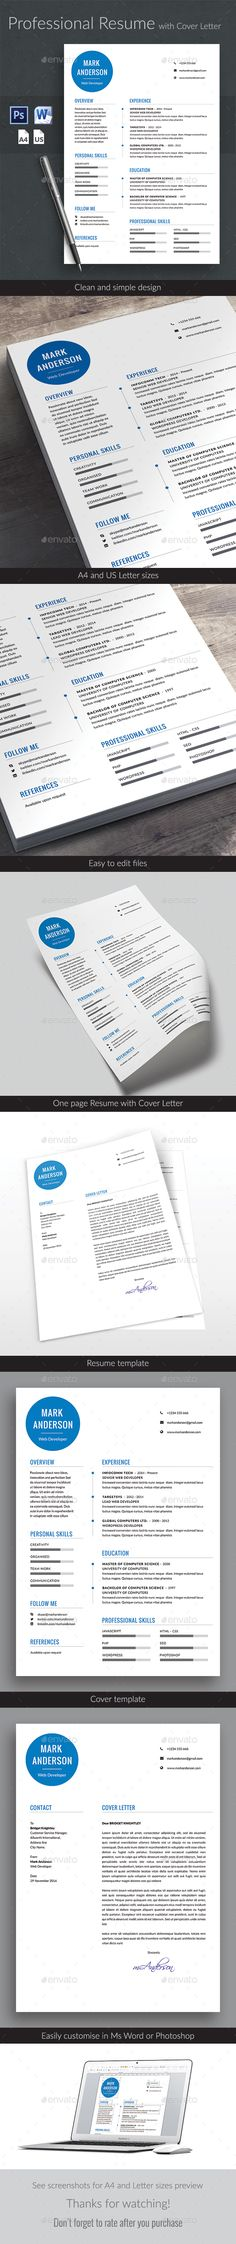 Resume Templates Cv template, Modern resume and Creative cv template - easy resumes